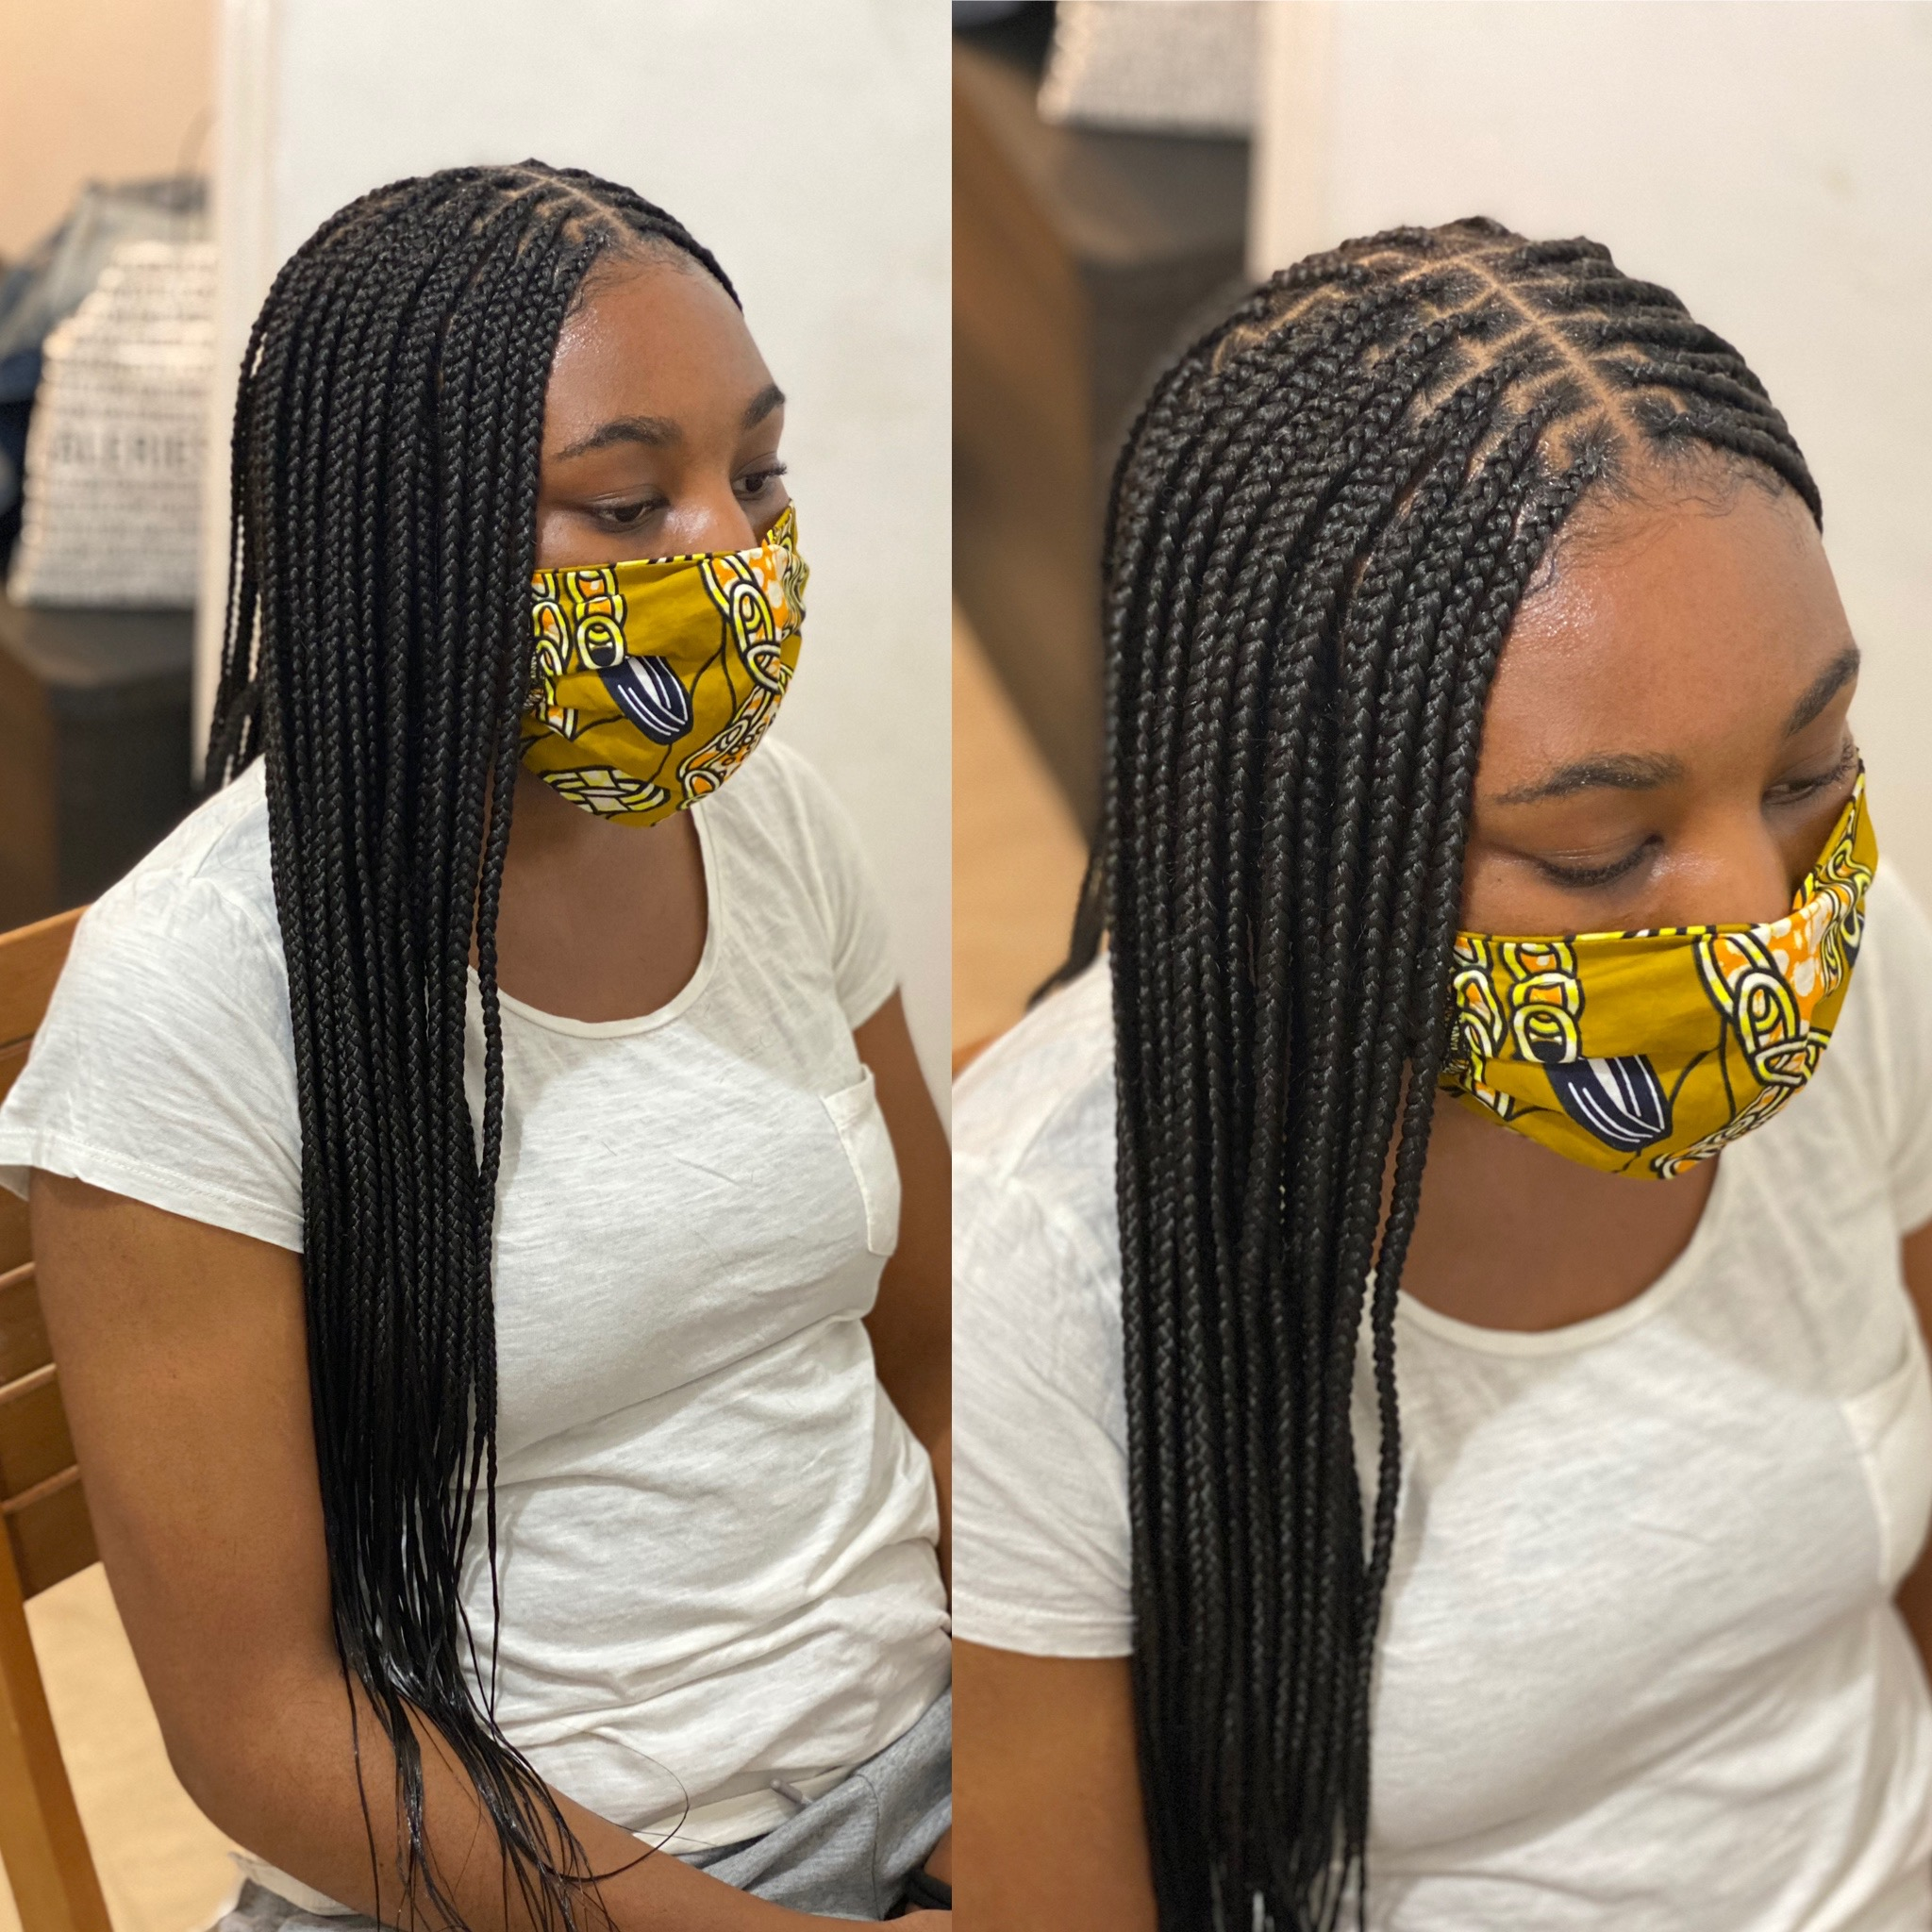 salon de coiffure afro tresse tresses box braids crochet braids vanilles tissages paris 75 77 78 91 92 93 94 95 ZGNZLBHM